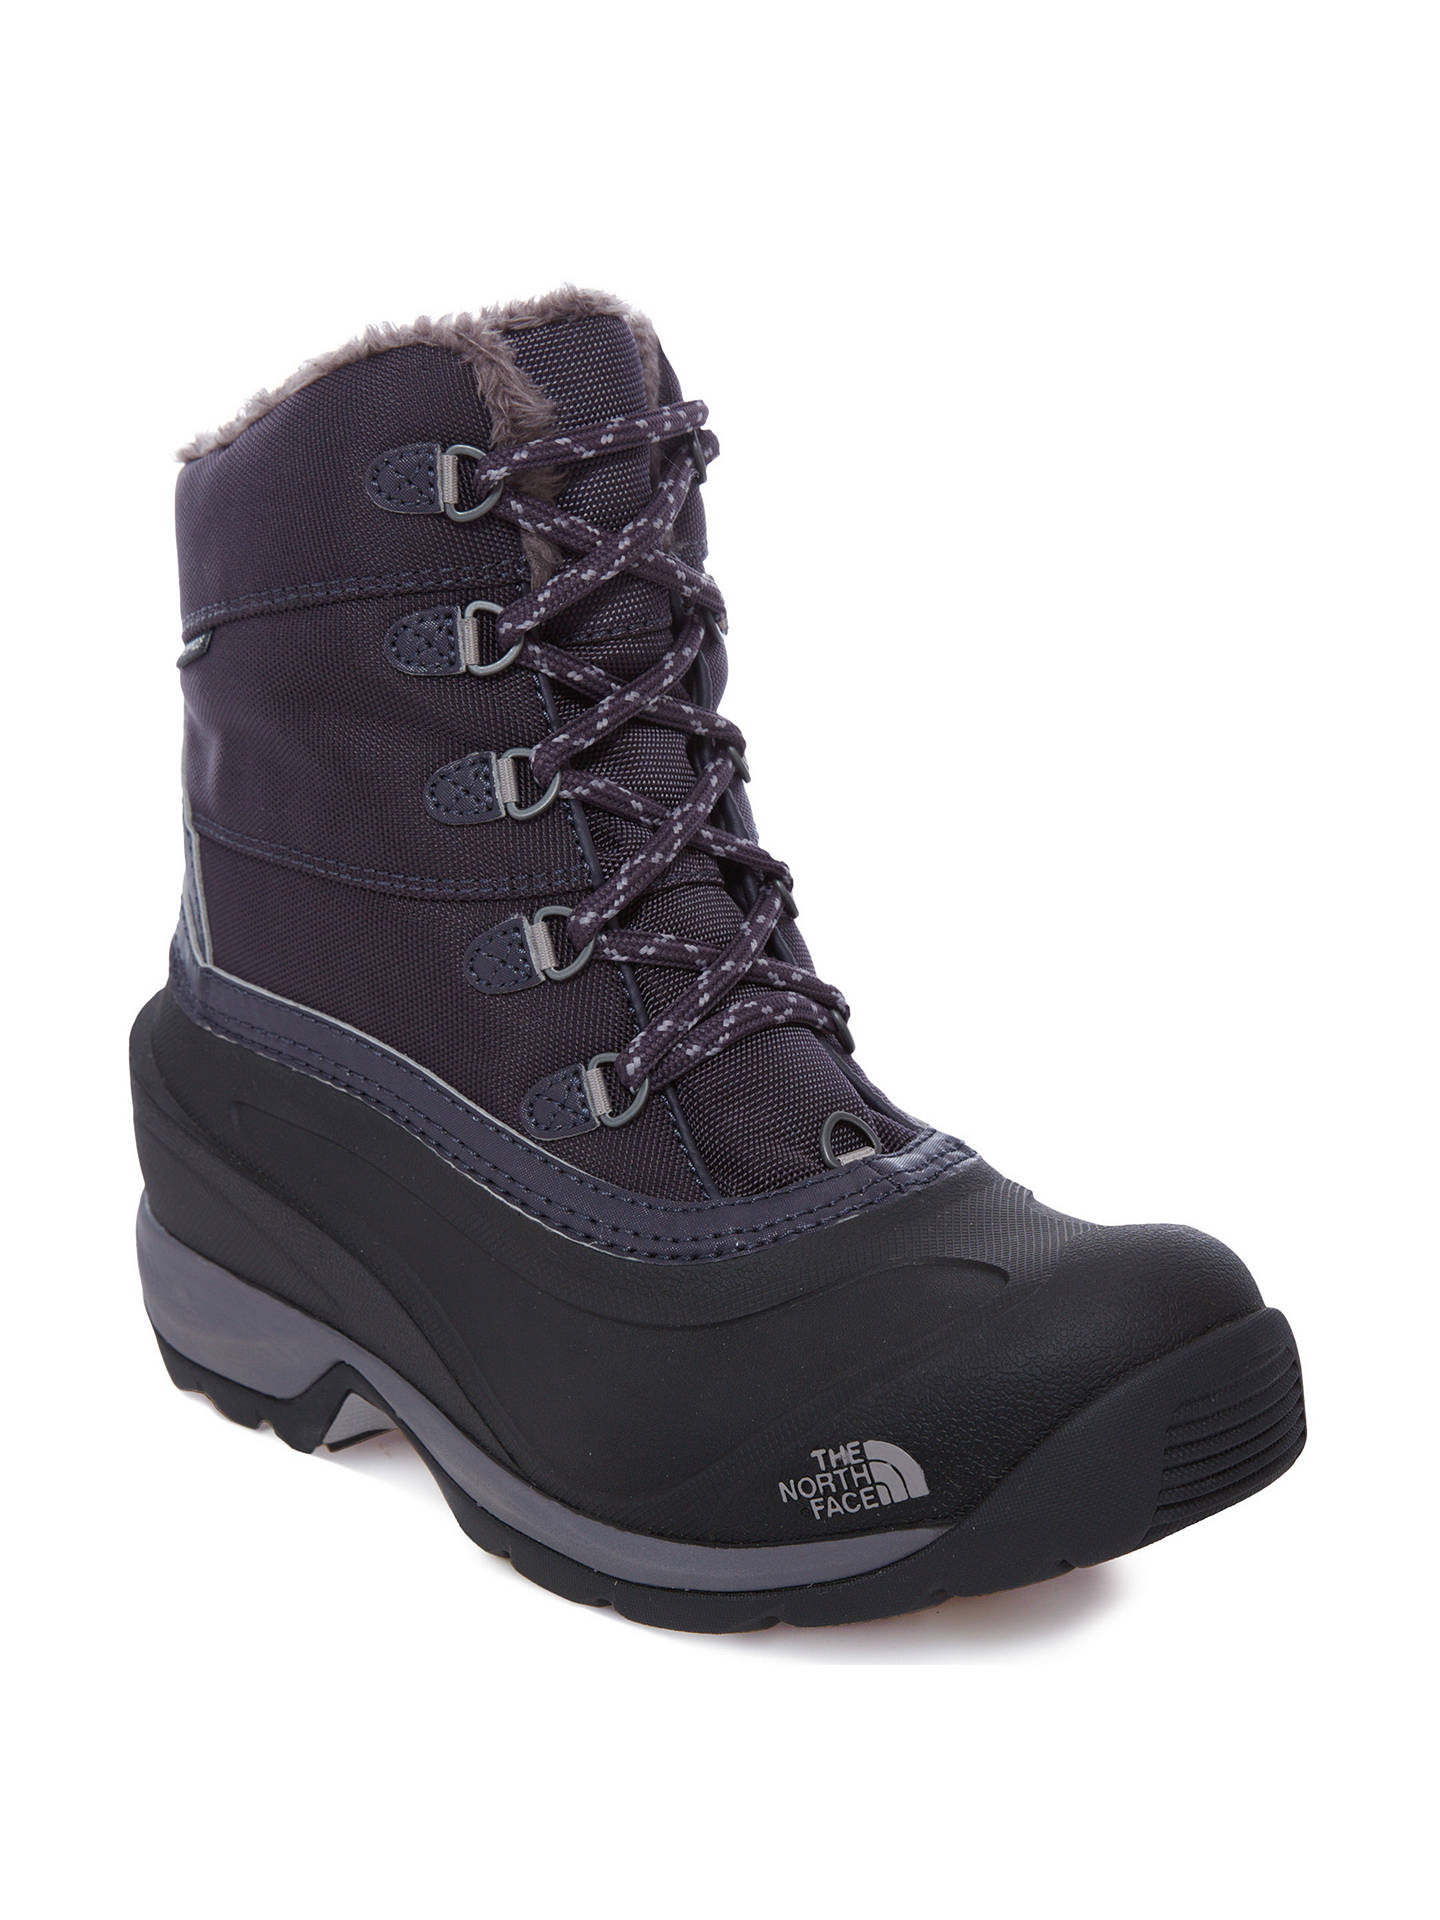 e79fc5dbc The North Face Chilkat III Women's Walking Boots, Grey at John Lewis ...